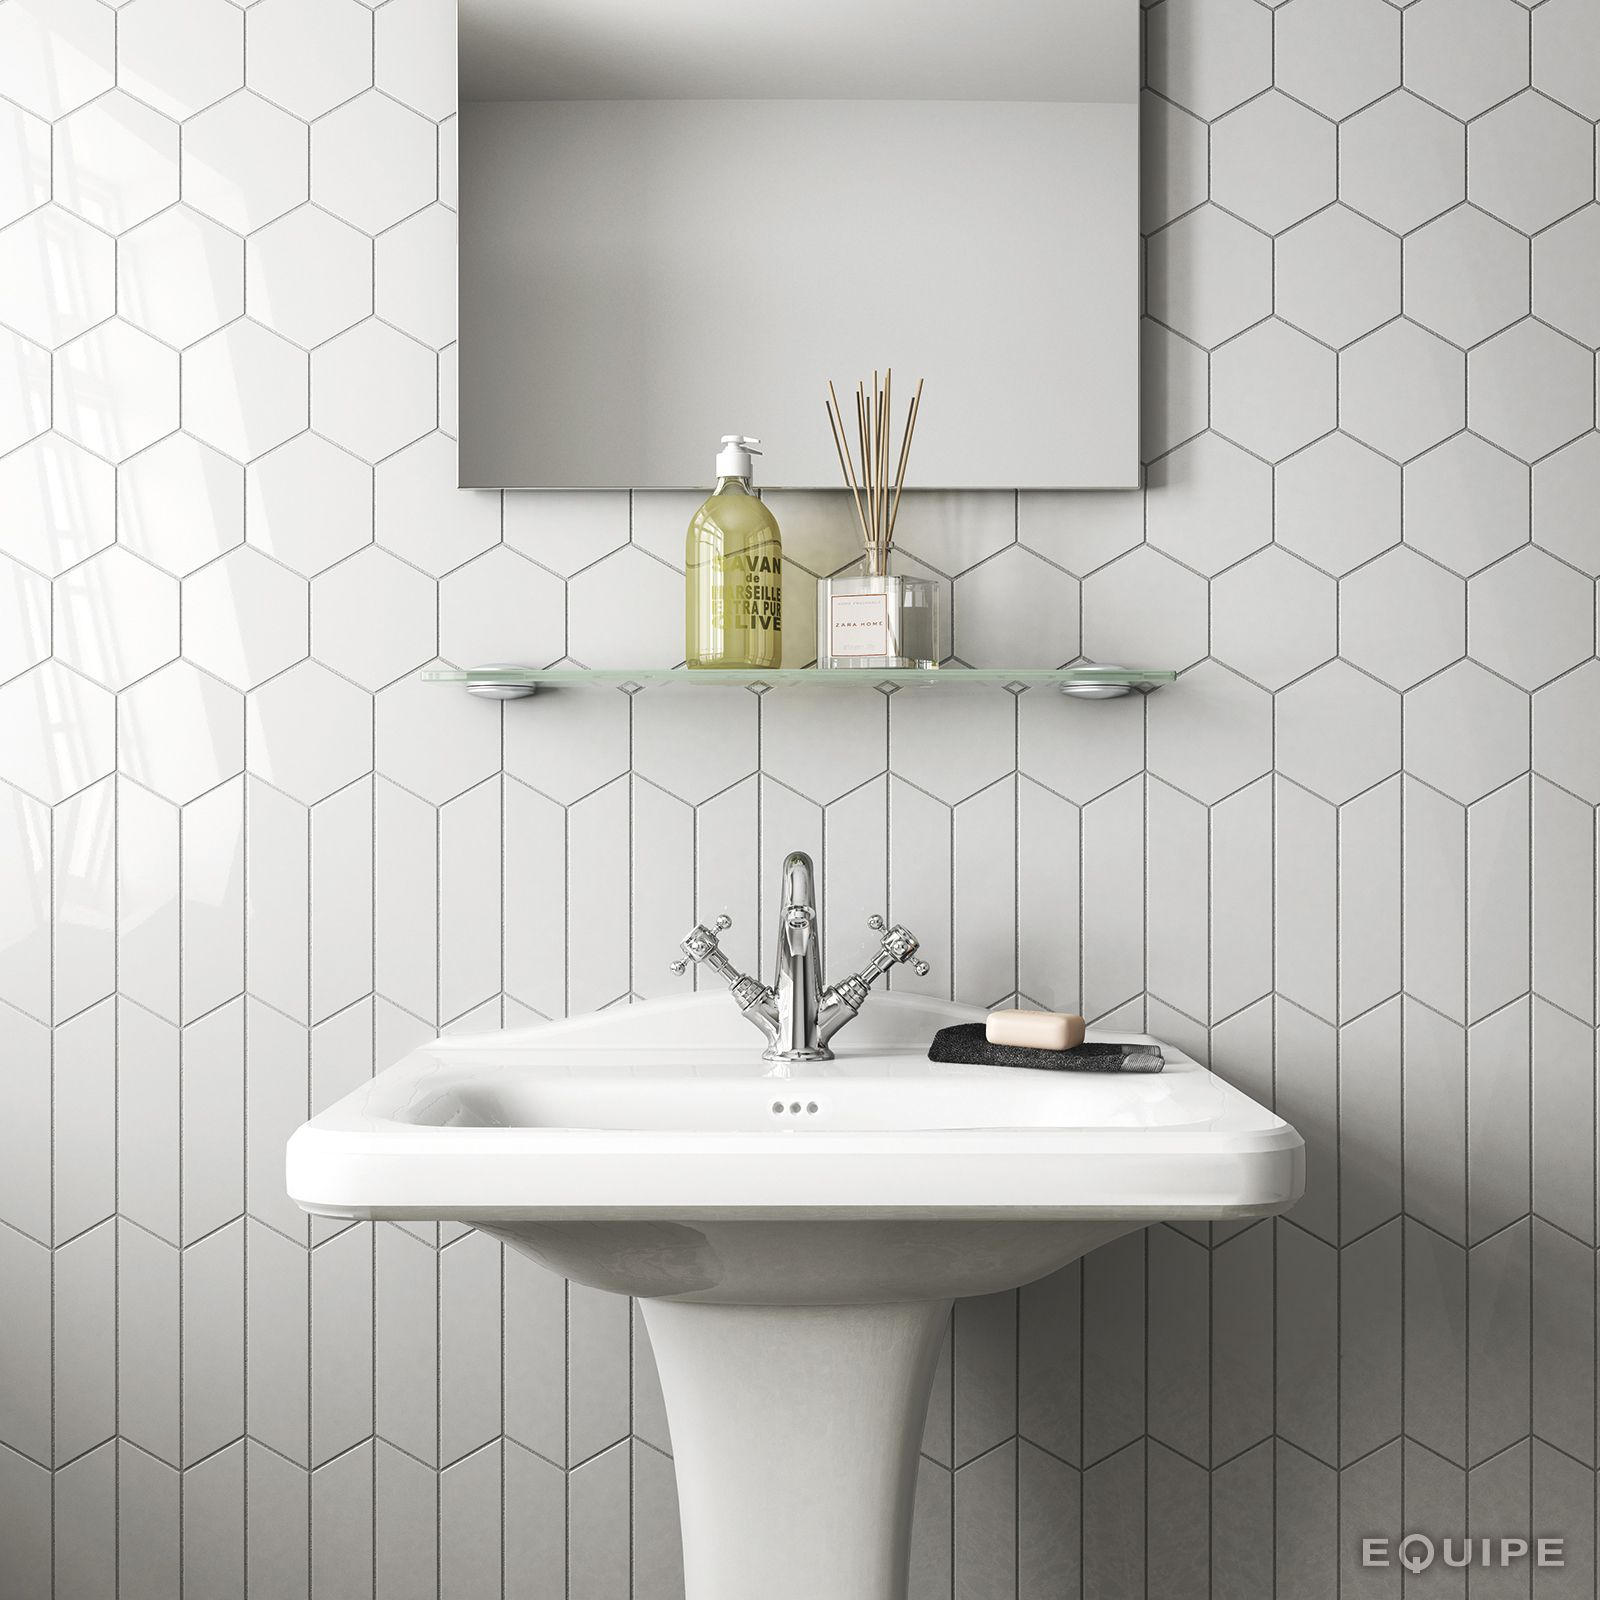 Chevron Wall White 18,6x5,2 / Scale Hexagon White 12,4x10,7  2016 trends  Pinterest ...